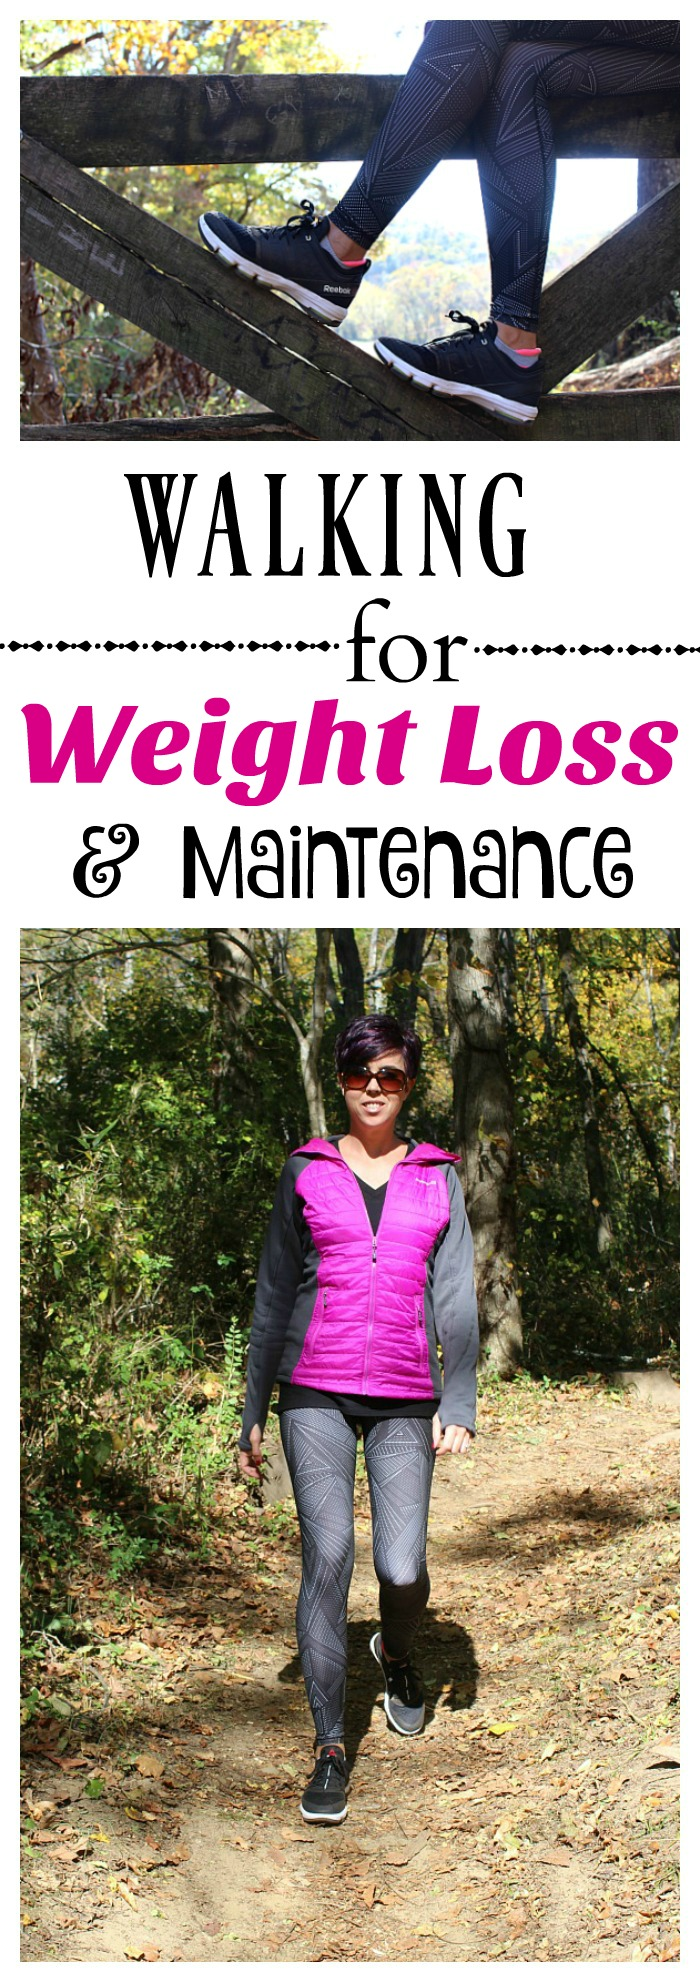 walking-for-weight-loss-and-maintenance-final